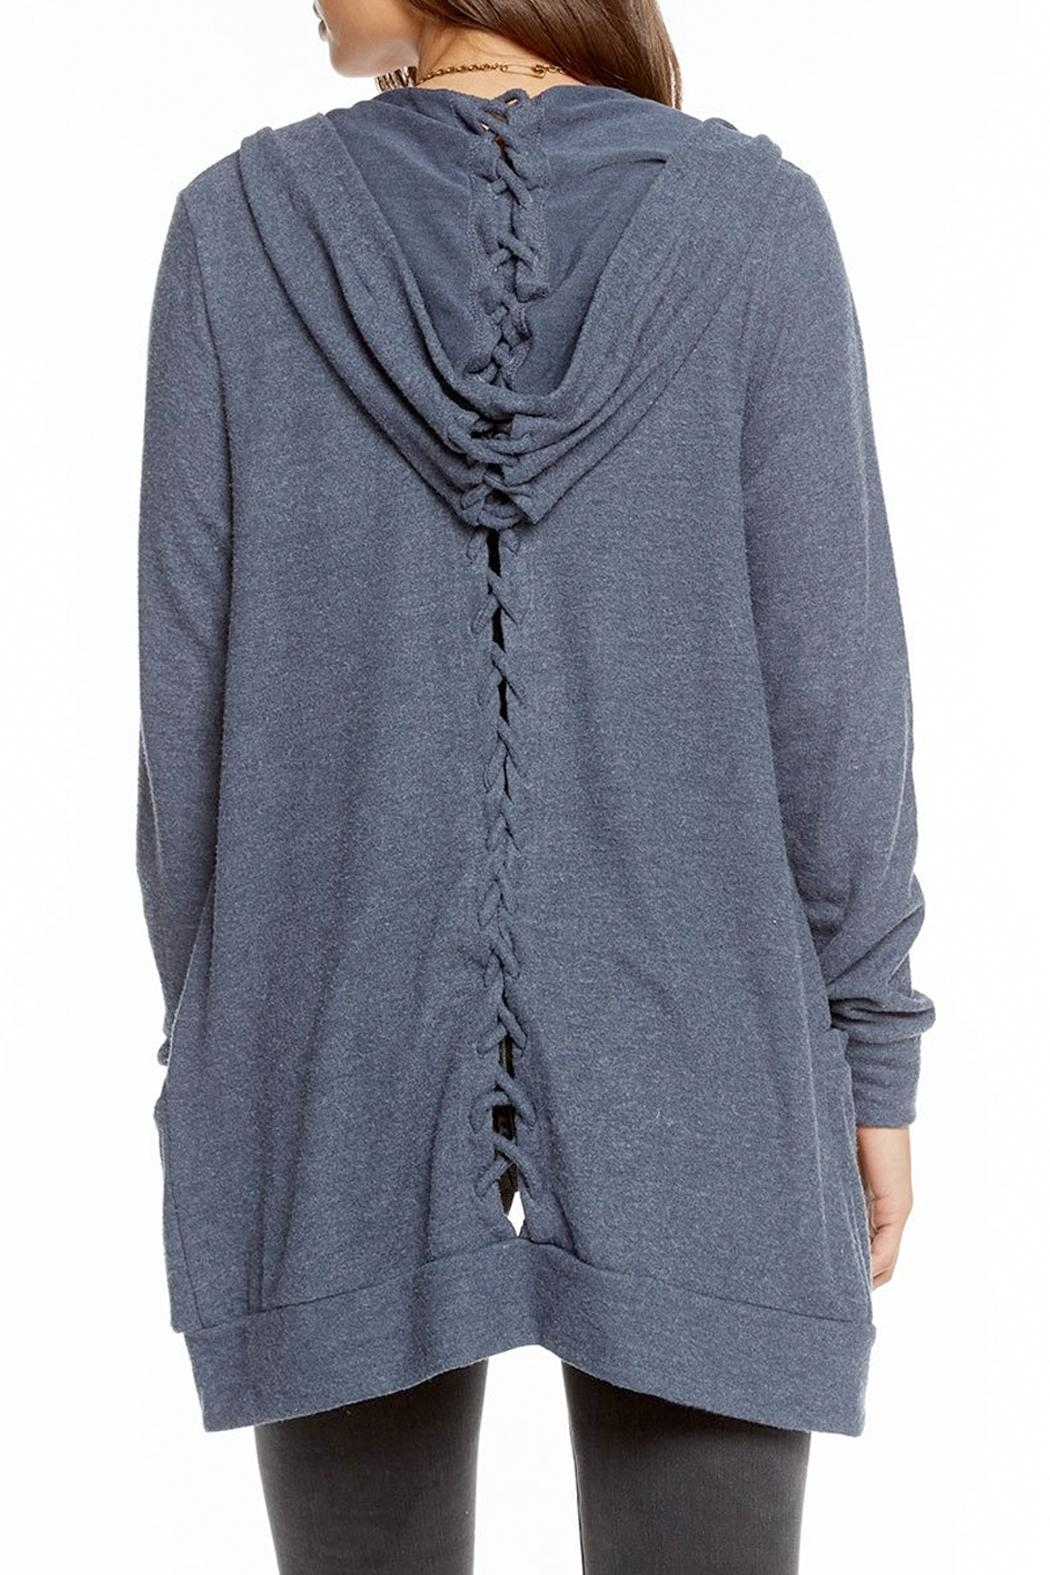 Chaser Laced Back Cardigan - Side Cropped Image